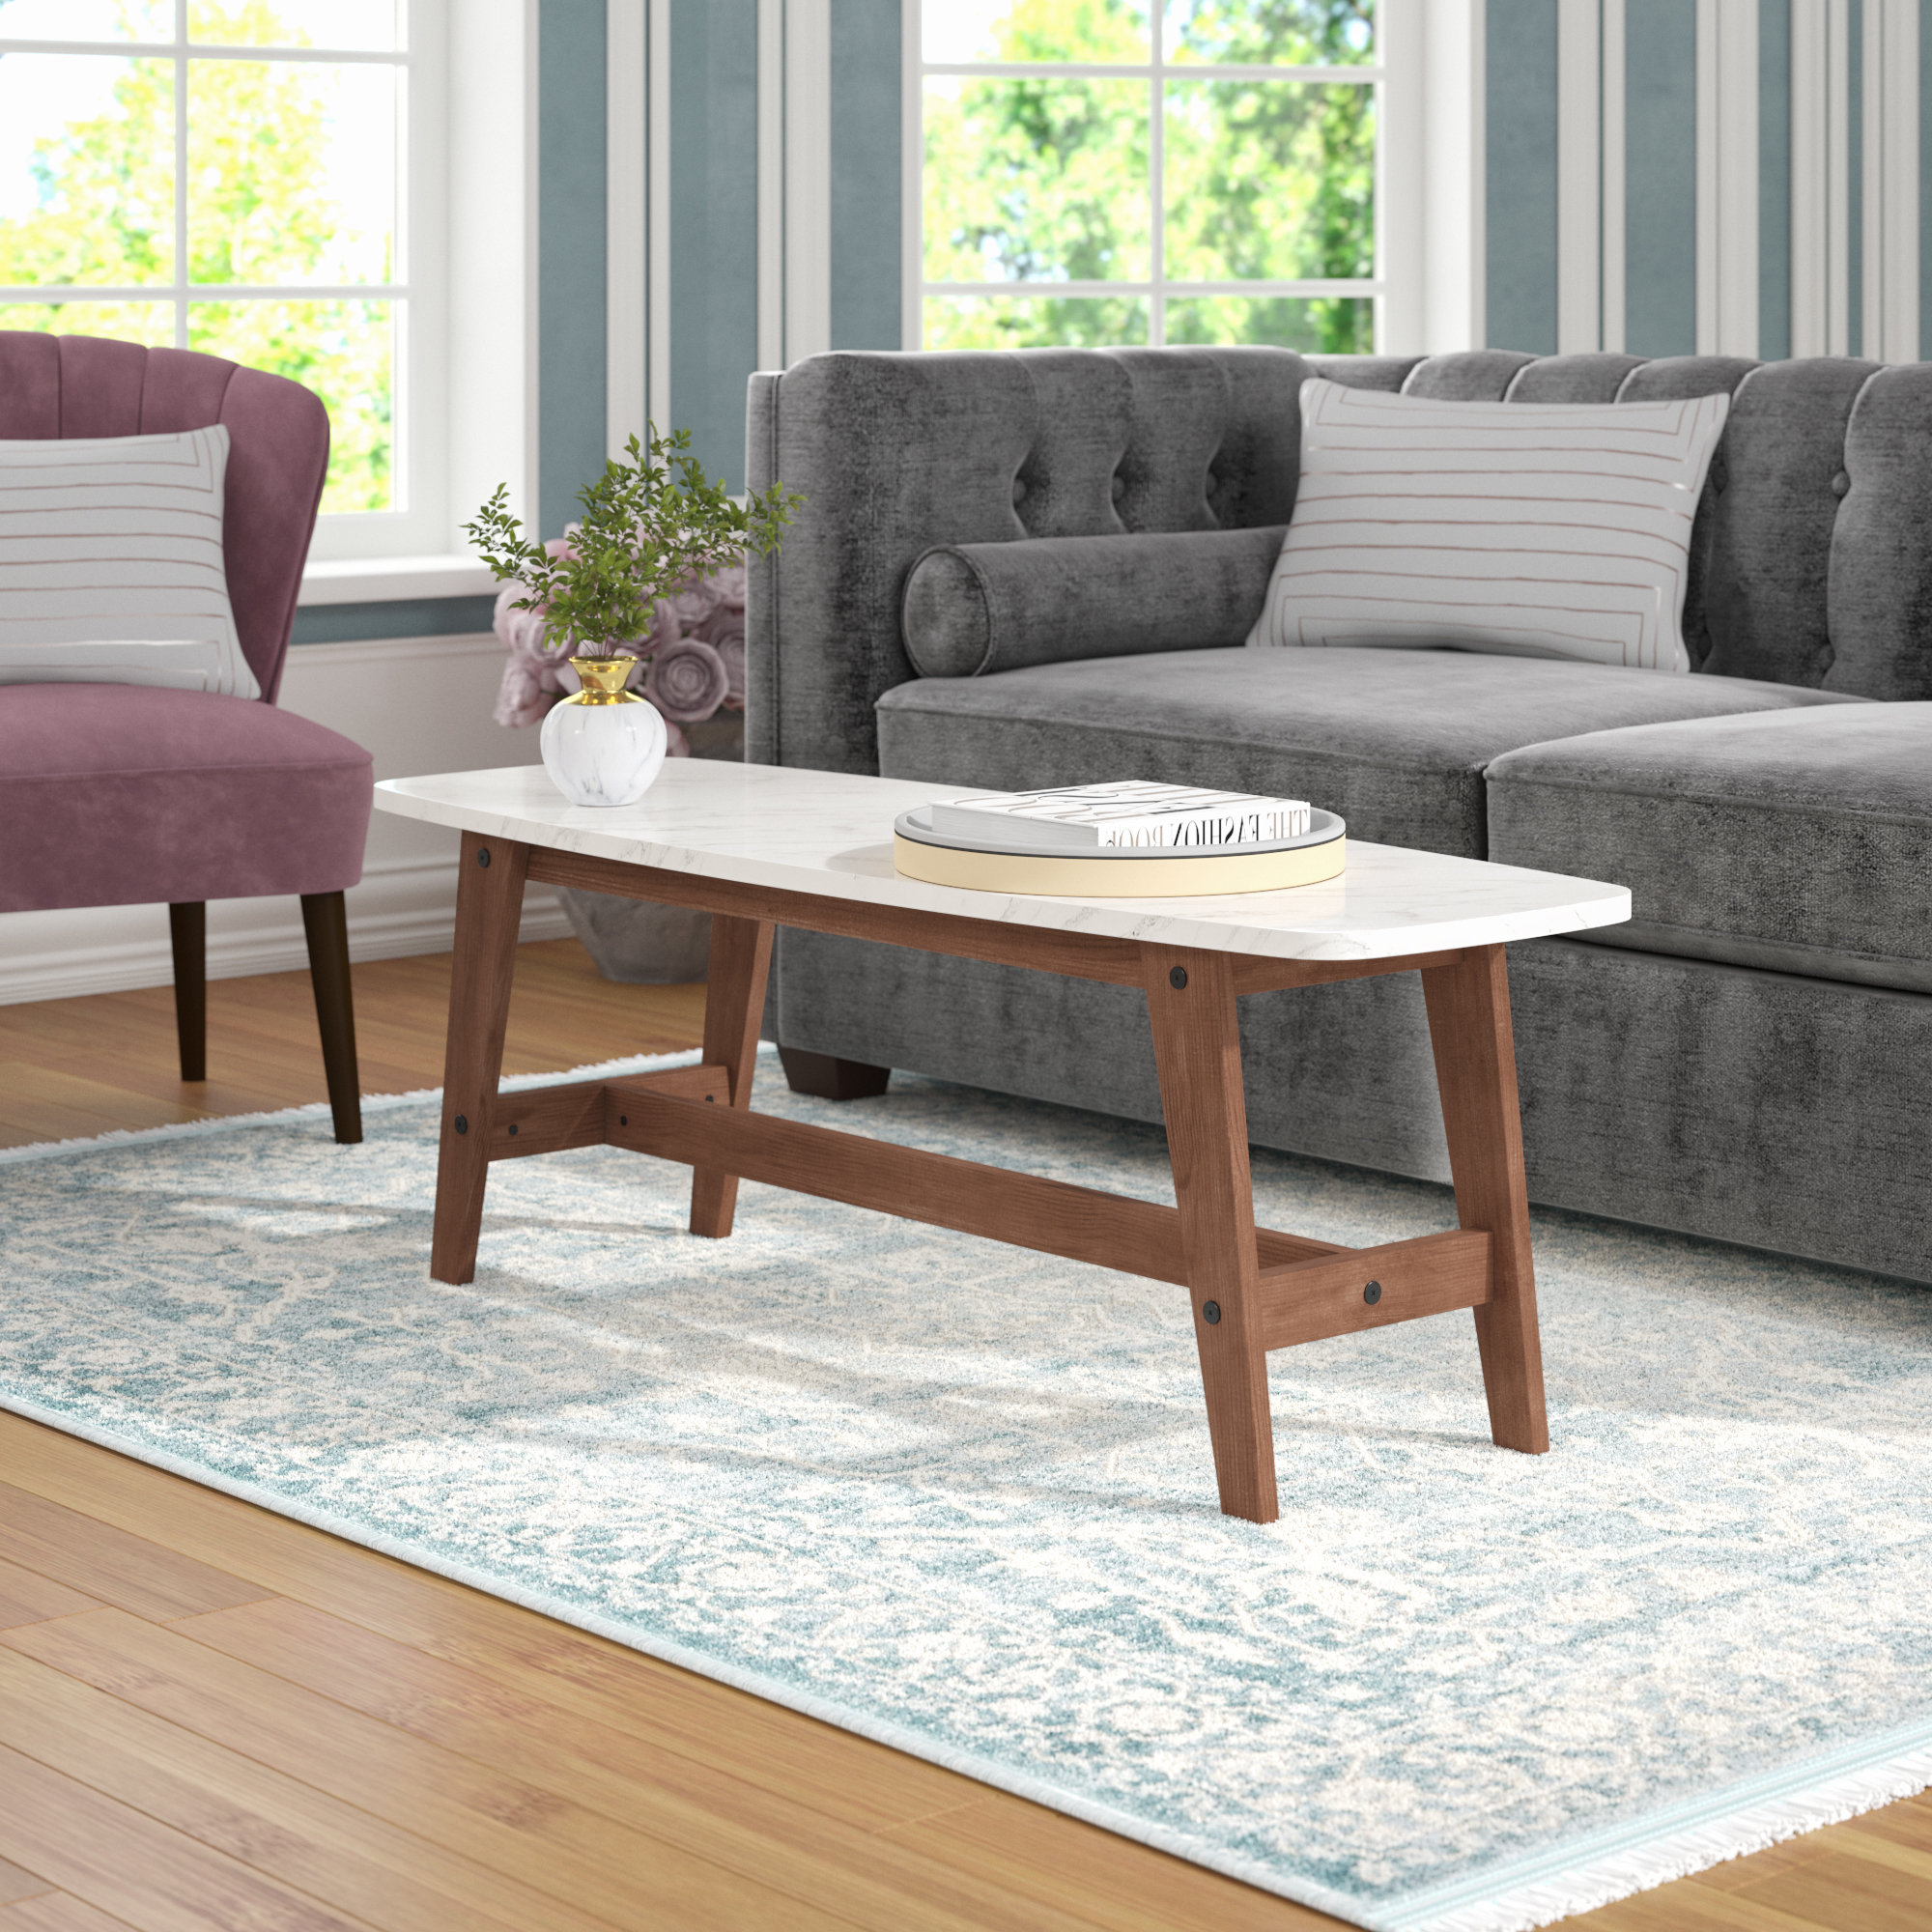 Stack Hi Gloss Wood Coffee Tables With Regard To Widely Used Mercury Row Posner Coffee Table & Reviews (View 7 of 20)